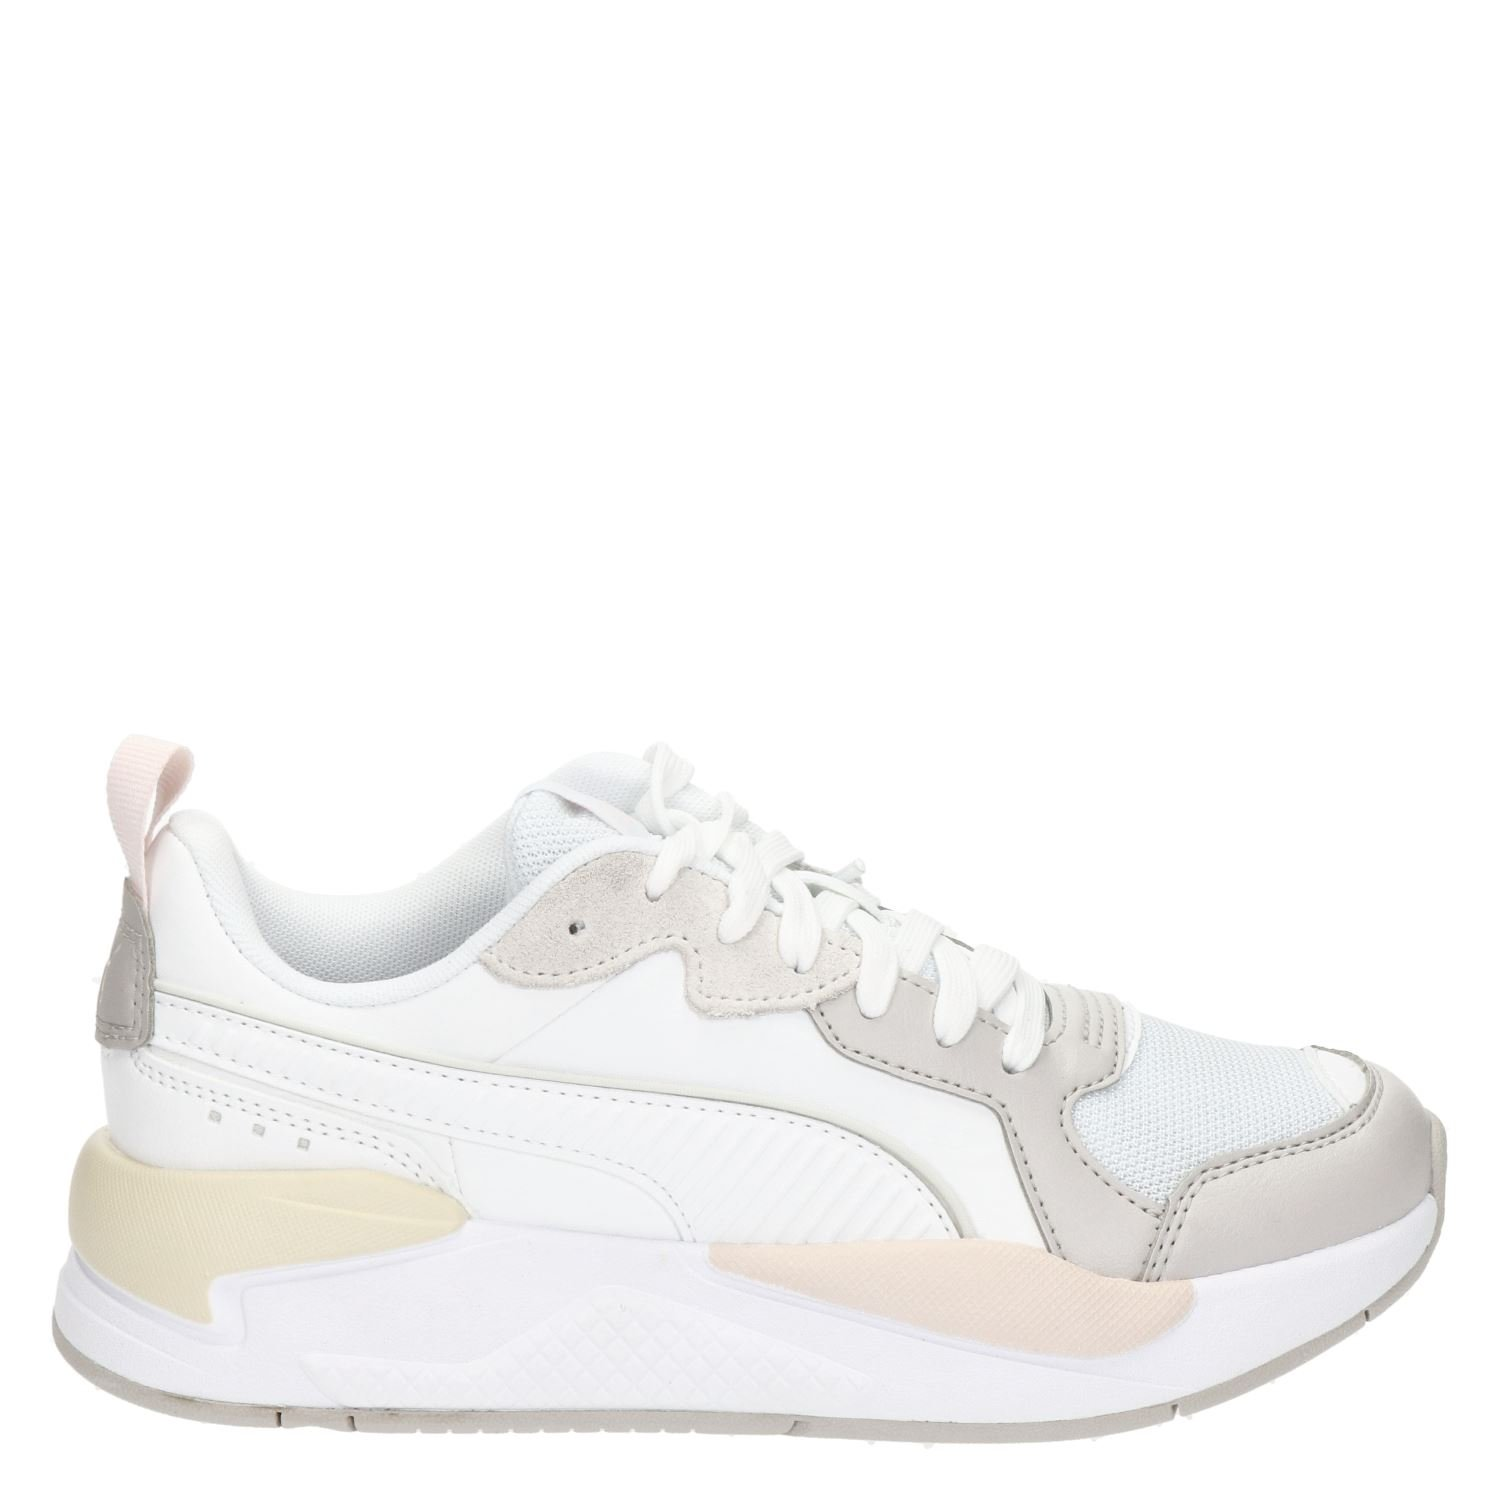 puma sneakers dames wit